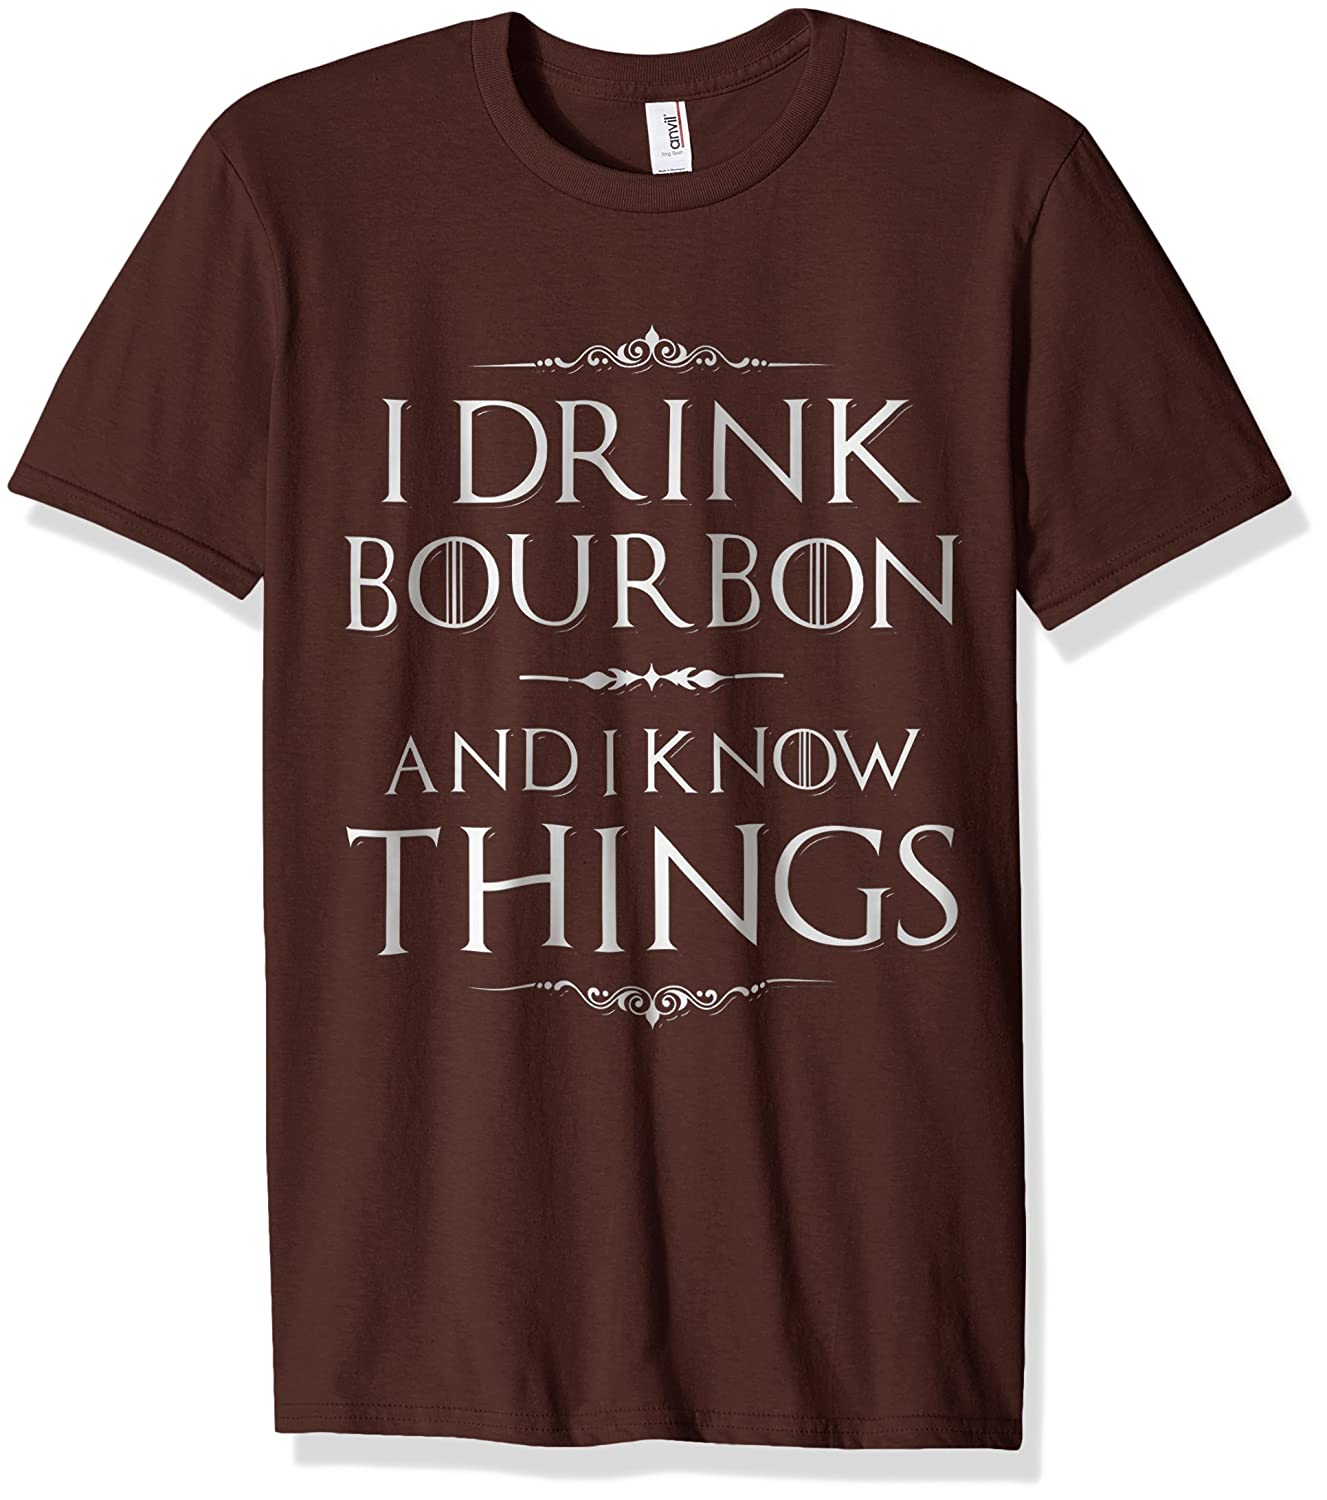 I Drink Bourbon And I Know Things T-Shirt-Vaci